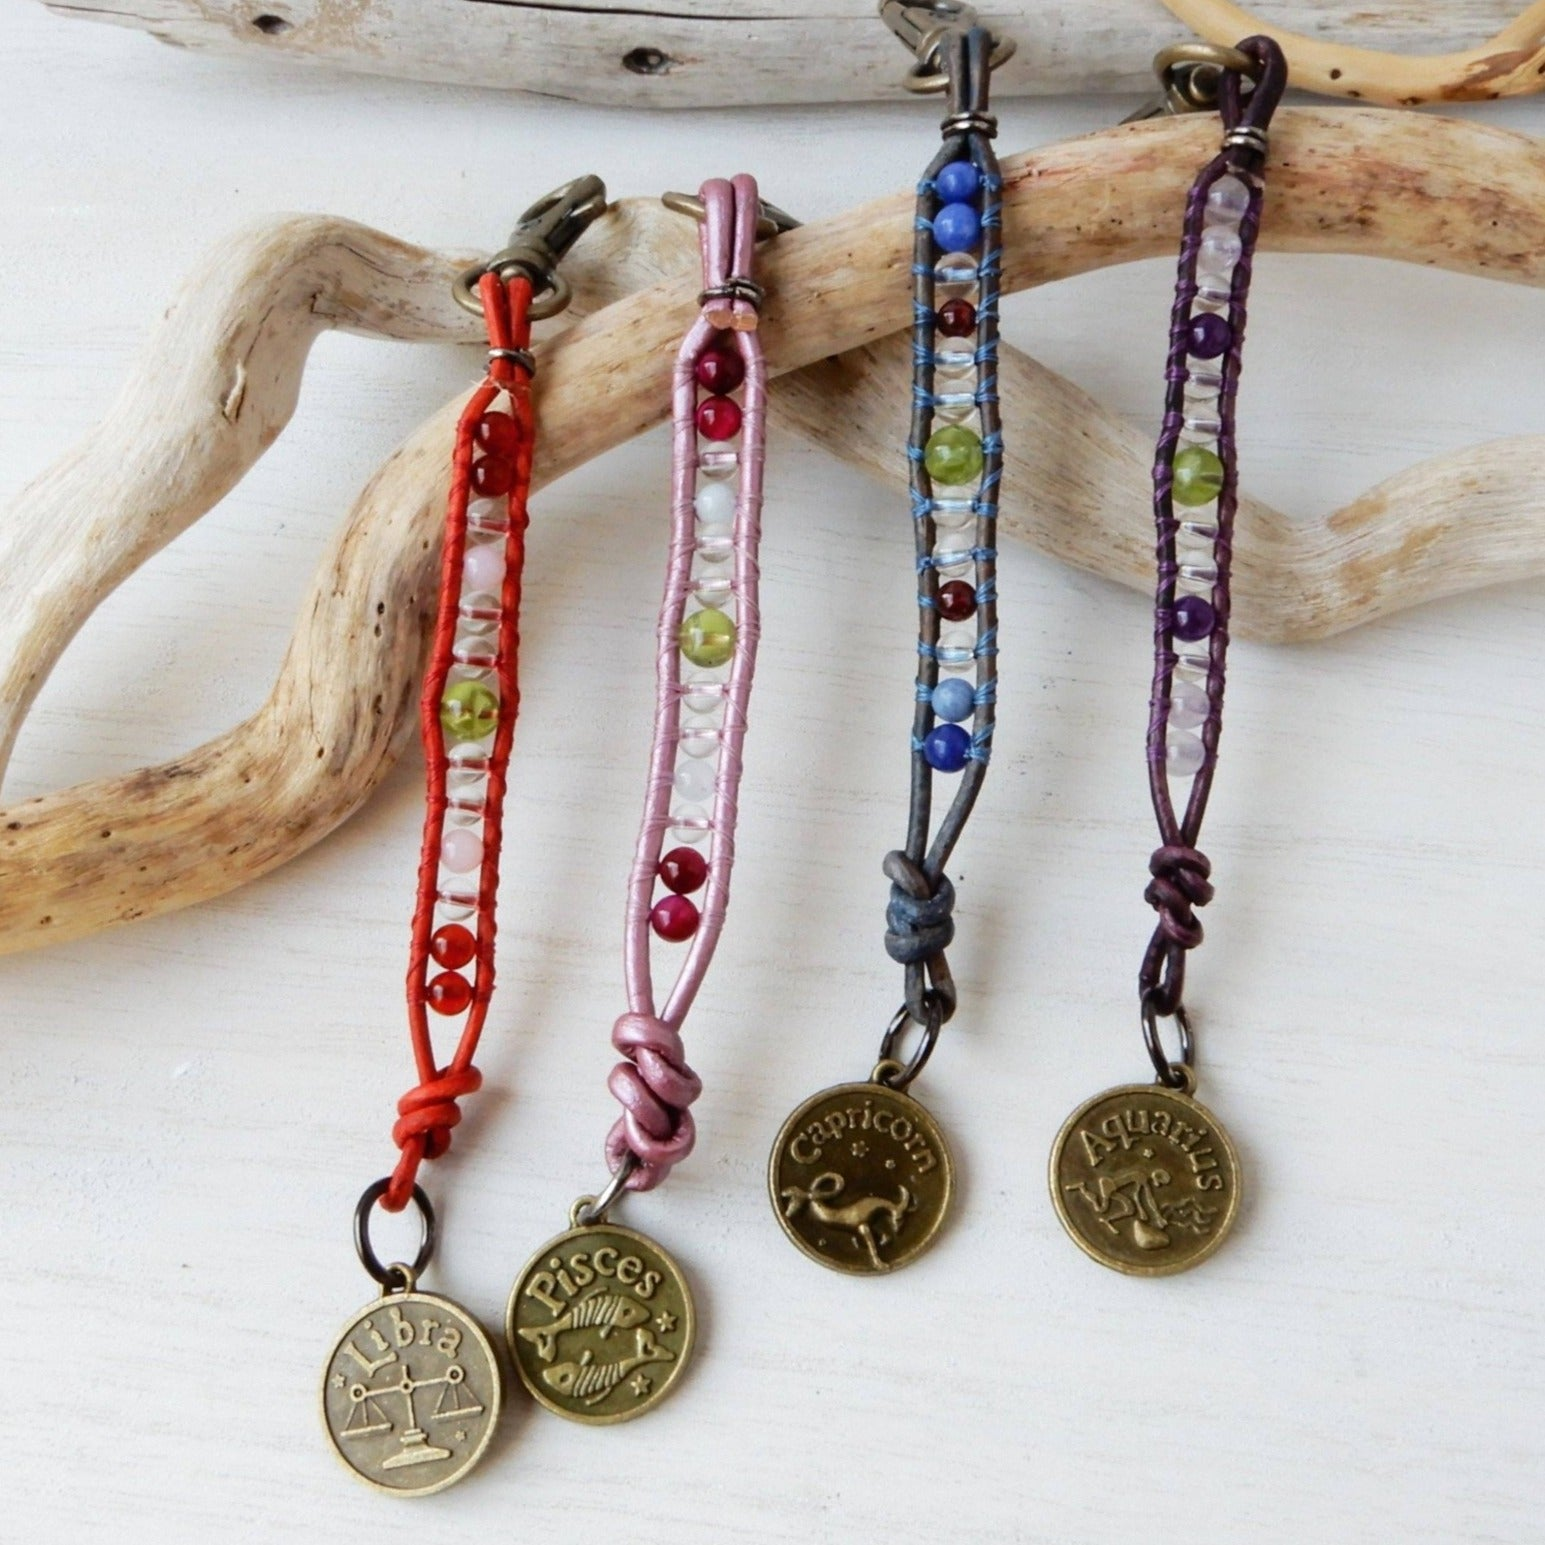 Accessory - Sunsign Zodiac Sign Starsign Bag Charm Keychain Strap Decoration Accessory